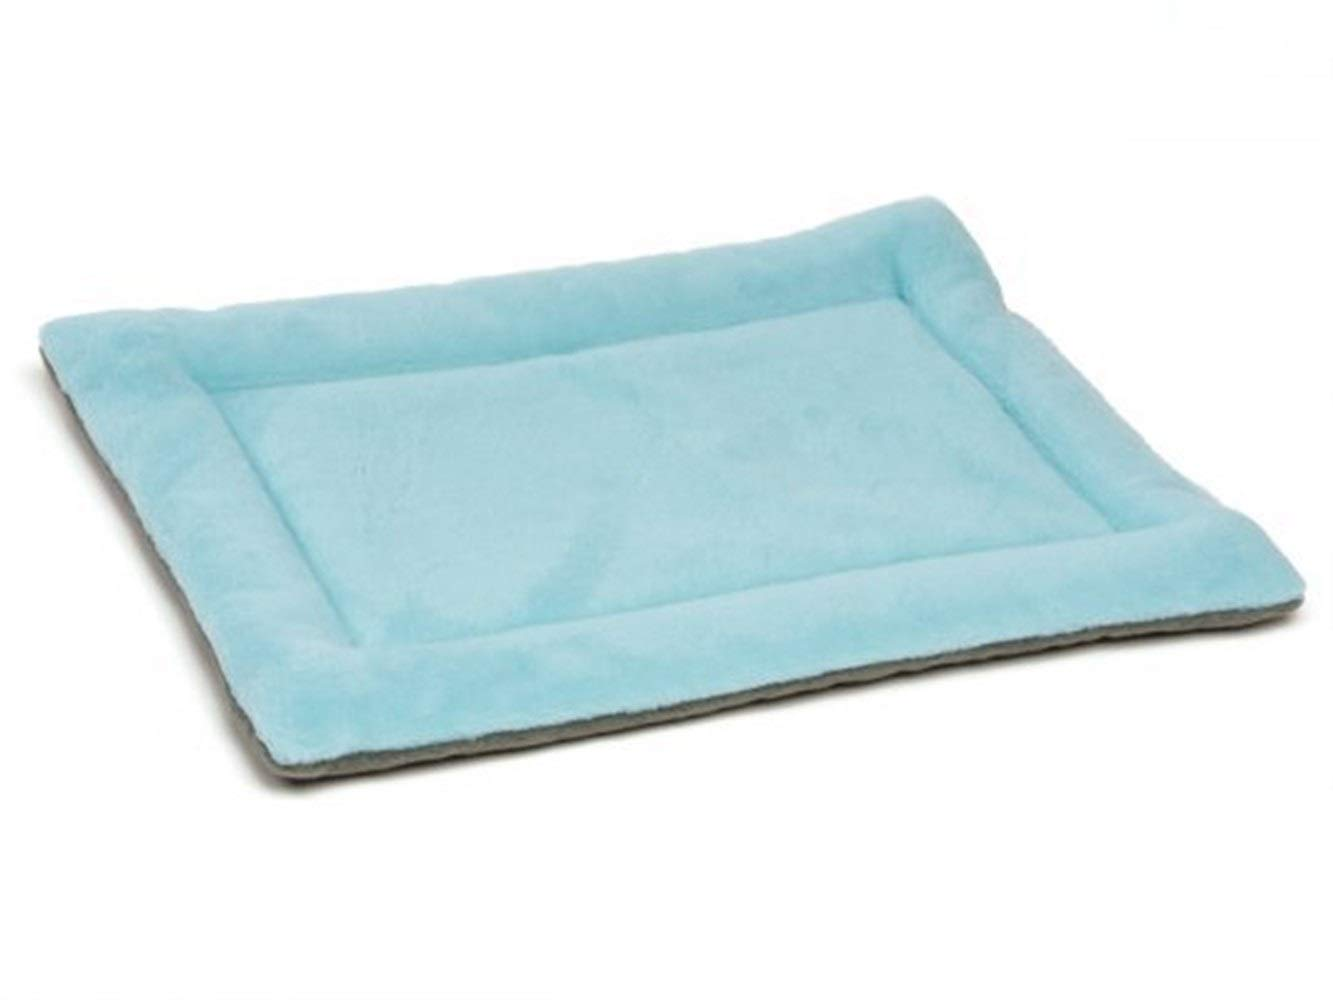 bluee 72X50X2CM bluee 72X50X2CM BeTTi Size Large Dog Bed Multi-color Pet Dog Bed Padded Puppy Cat Mat Warm Pet Cushion Rectangle Cat Dog Mat Kitten Kennel Soft (color   bluee, Size   72X50X2CM)